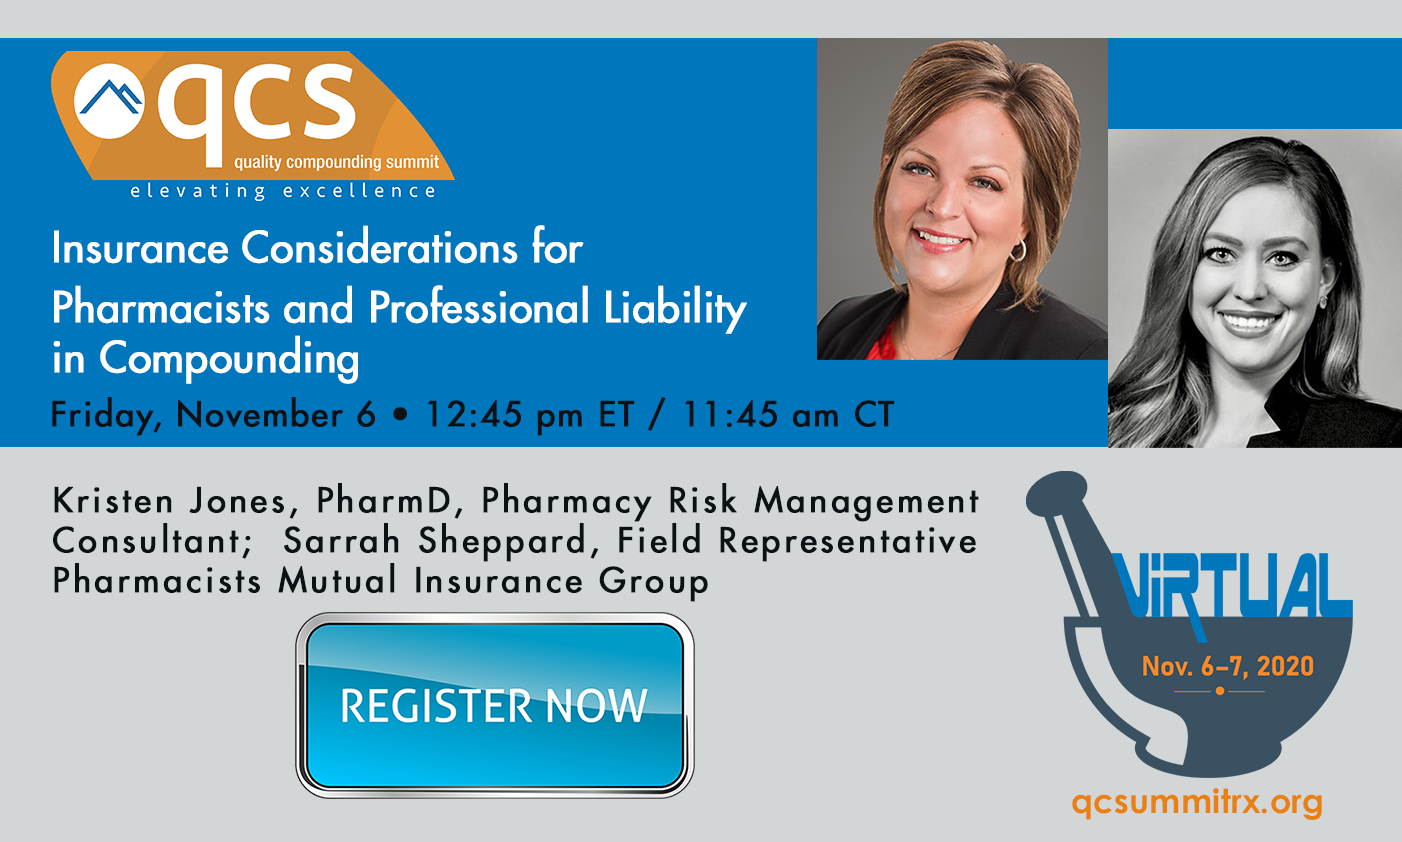 Insurance Considerations for Pharmacists and Professional Liability in Compounding